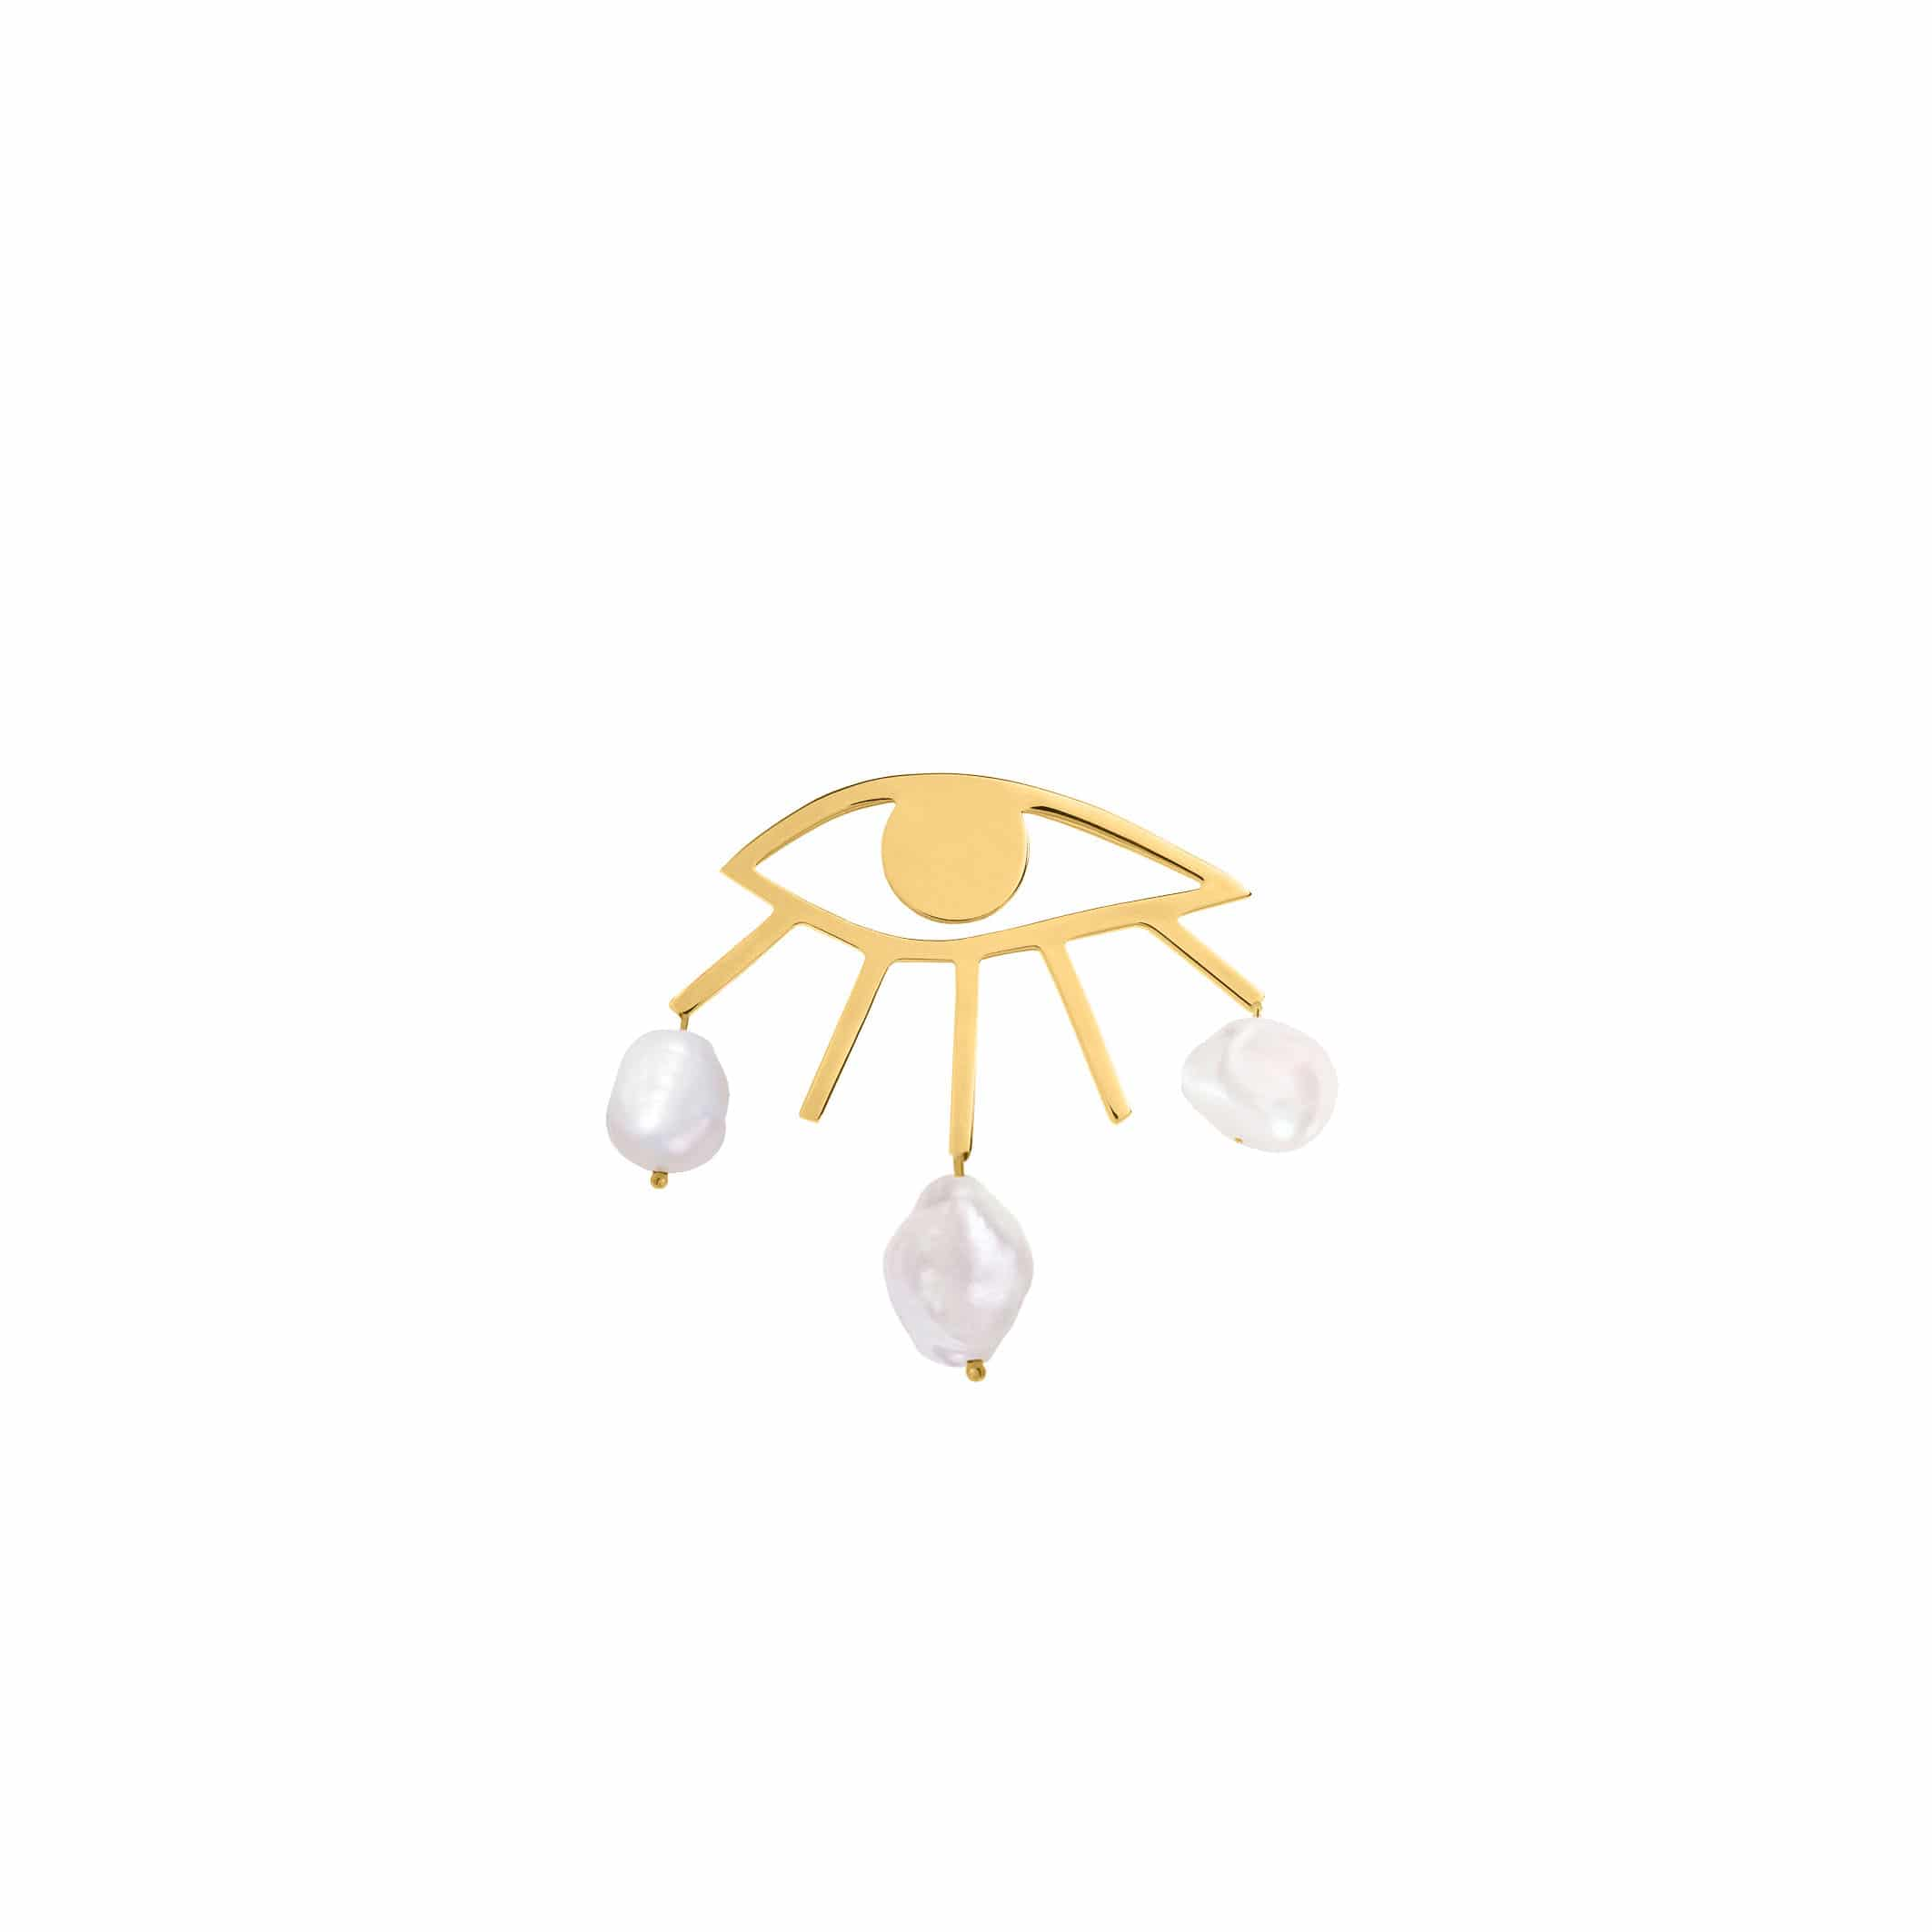 eye pin gold / limited edition